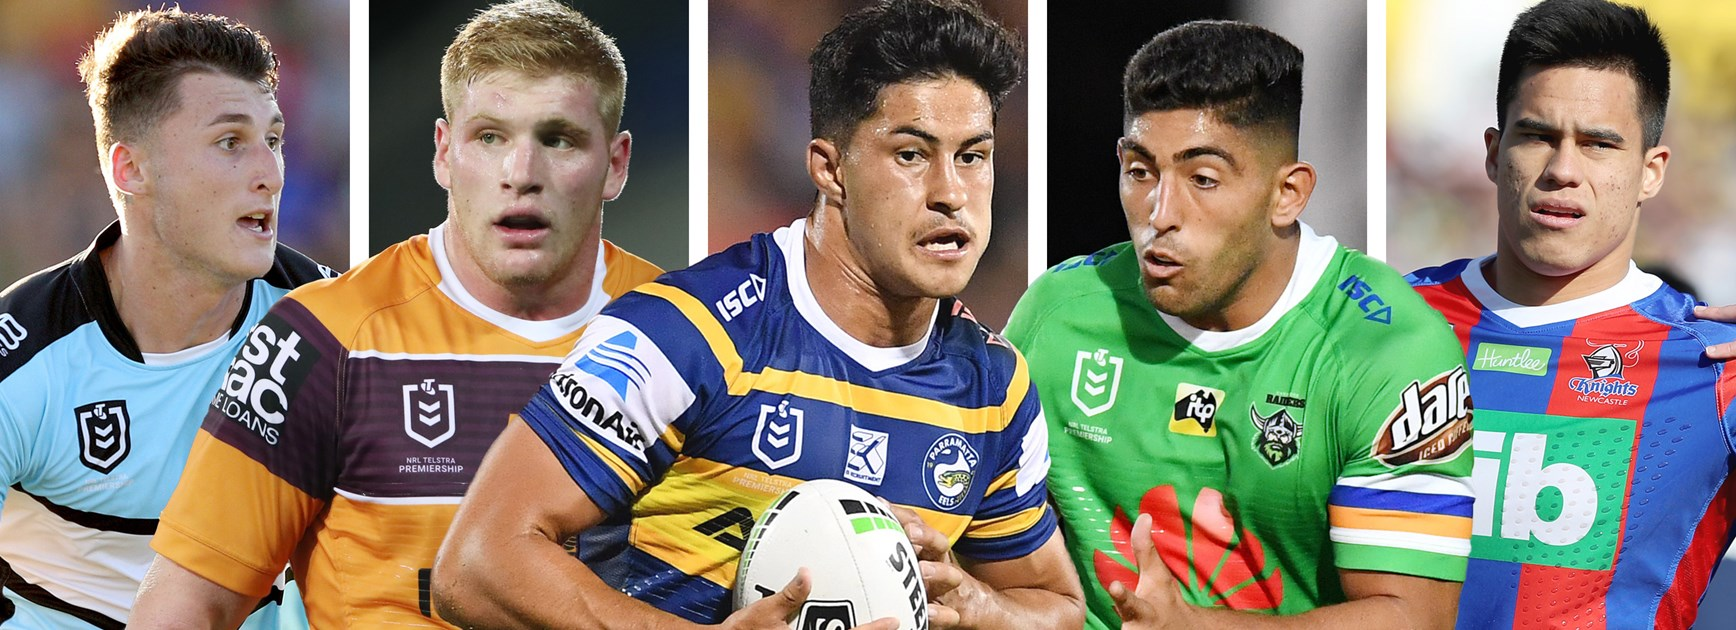 Your club's rookie to watch in 2019